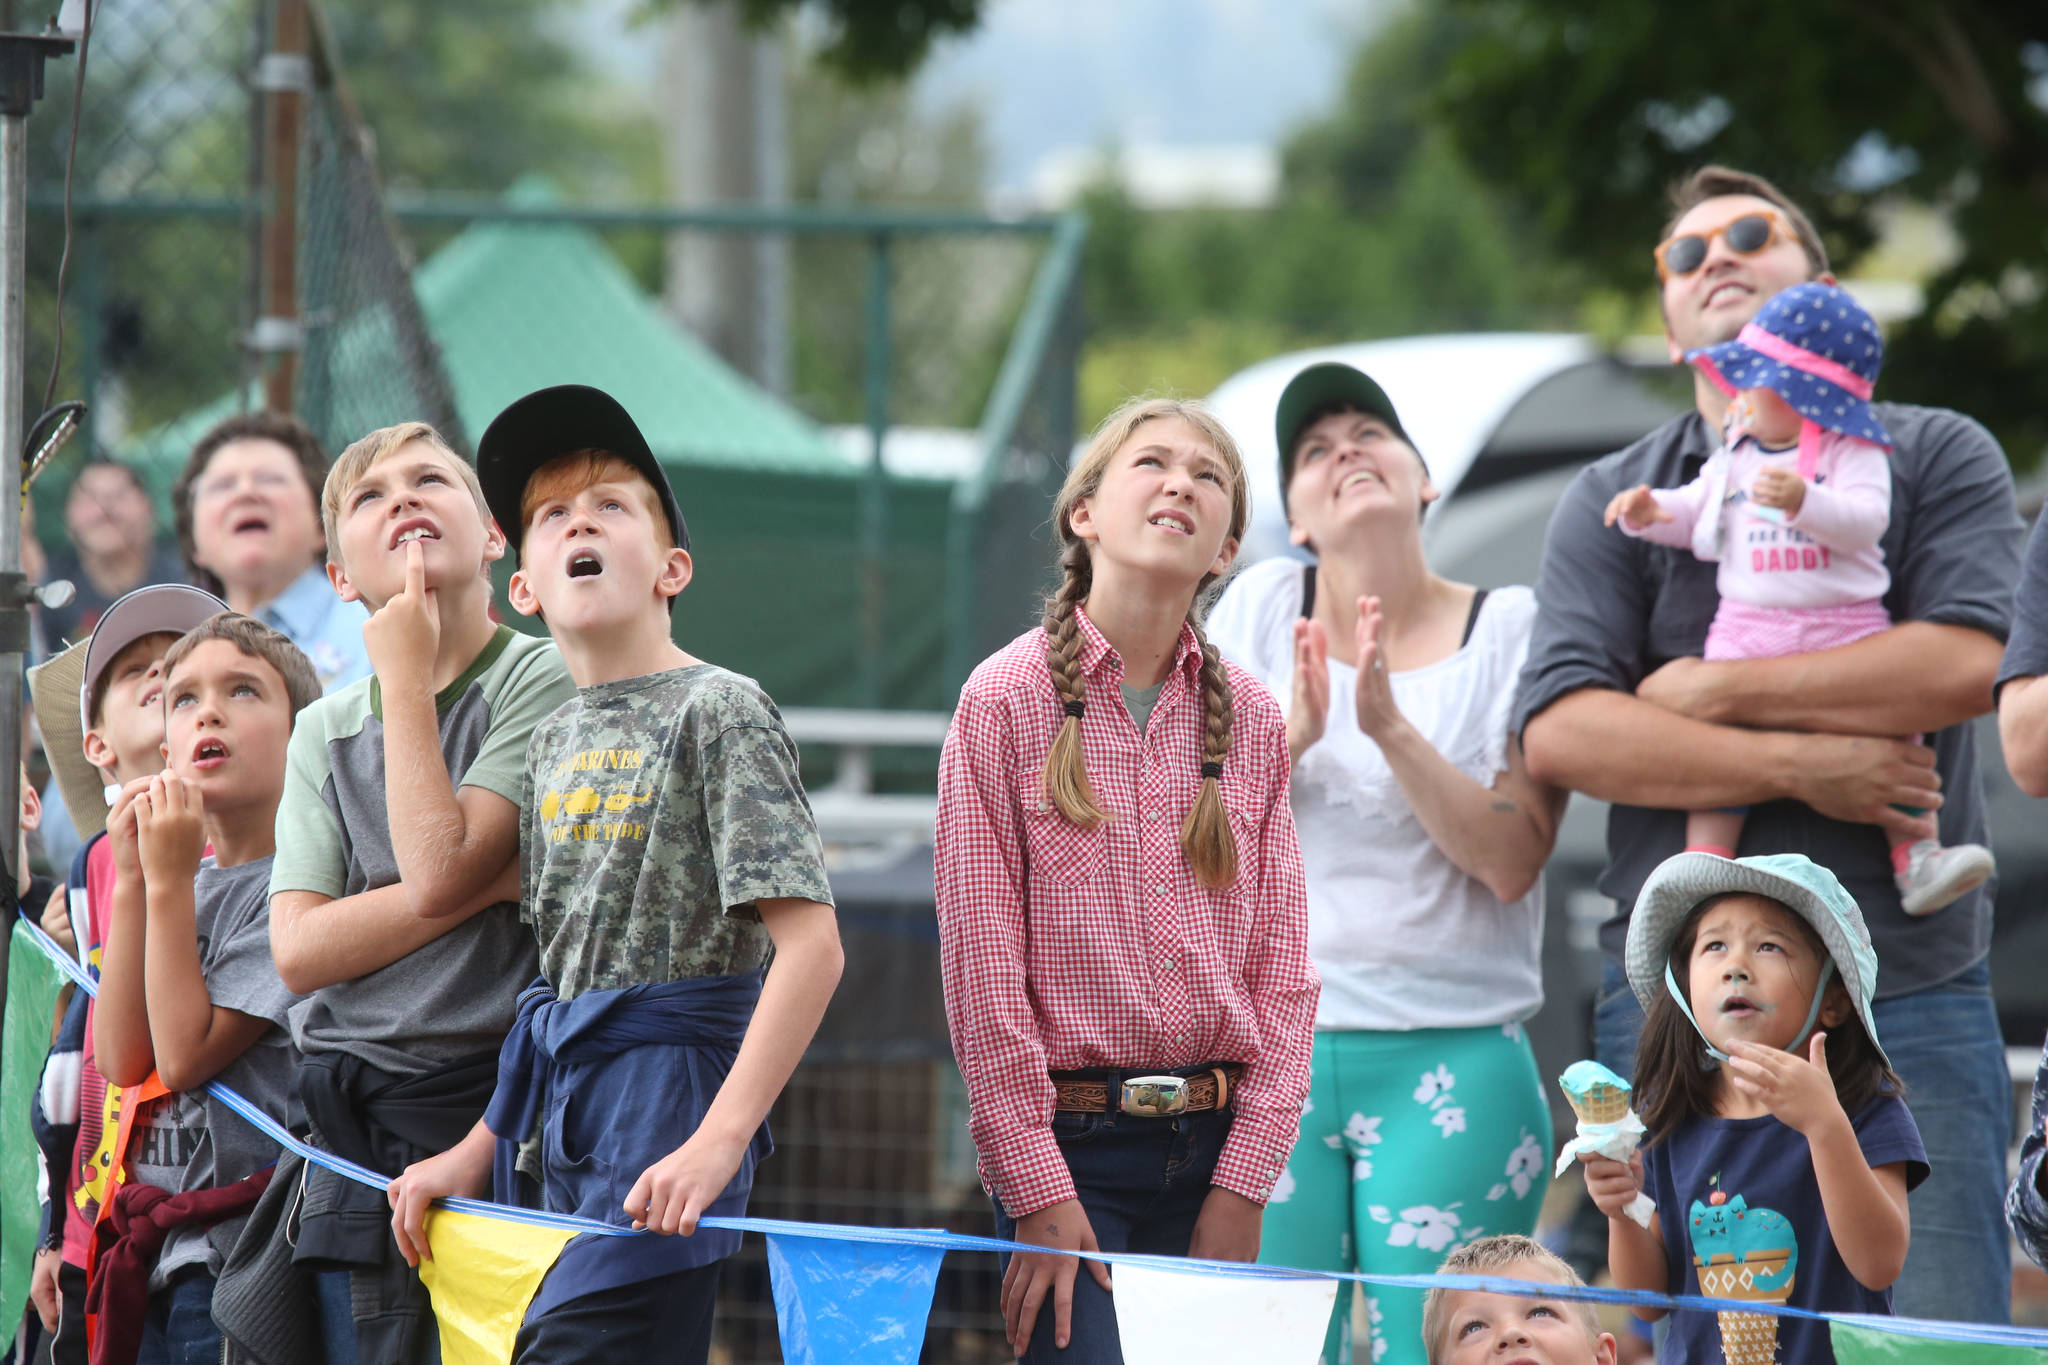 Kids watch as loggers climb 60 foot poles during the International Lumberjack Show on opening day of the Evergreen State Fair on Aug. 22 in Monroe. (Andy Bronson / The Herald)